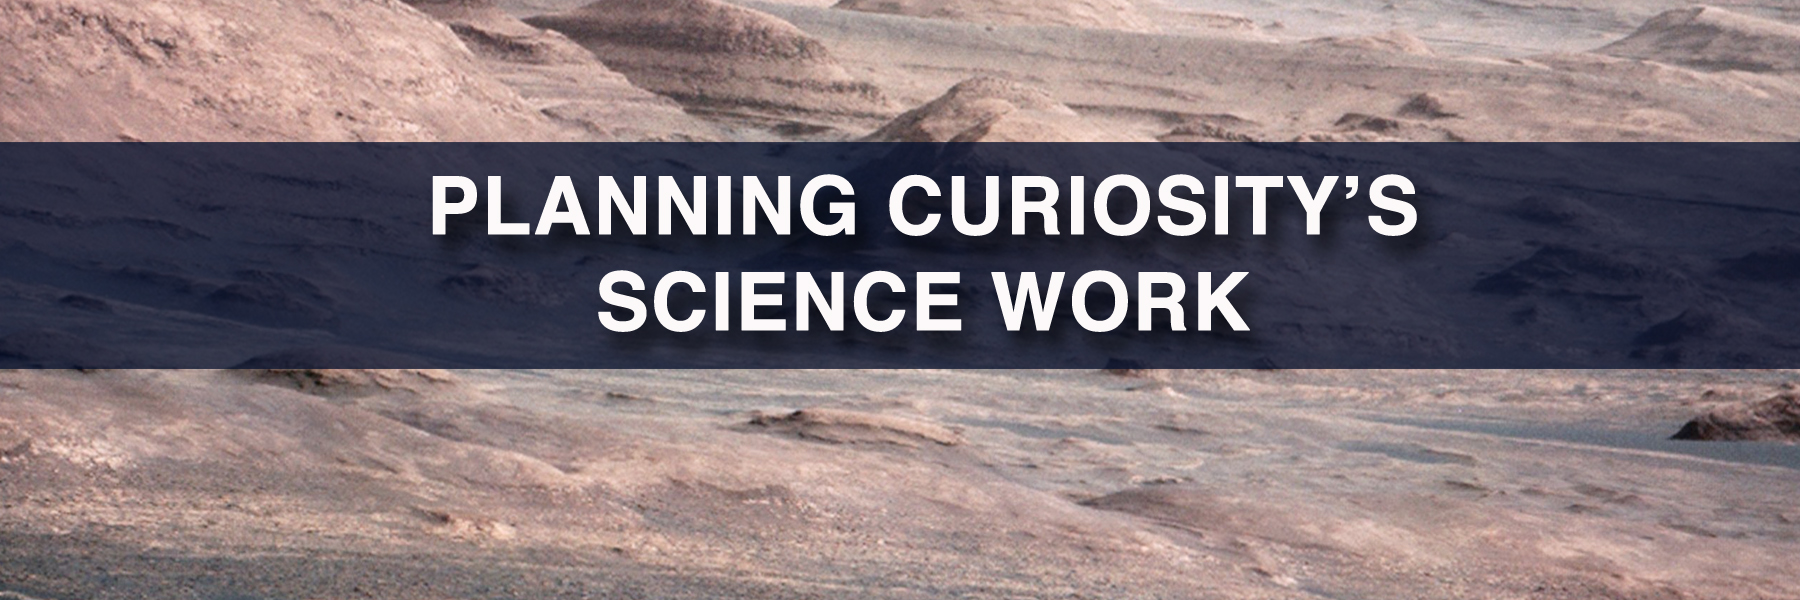 PLANNING CURIOSITY'S SCIENCE WORK